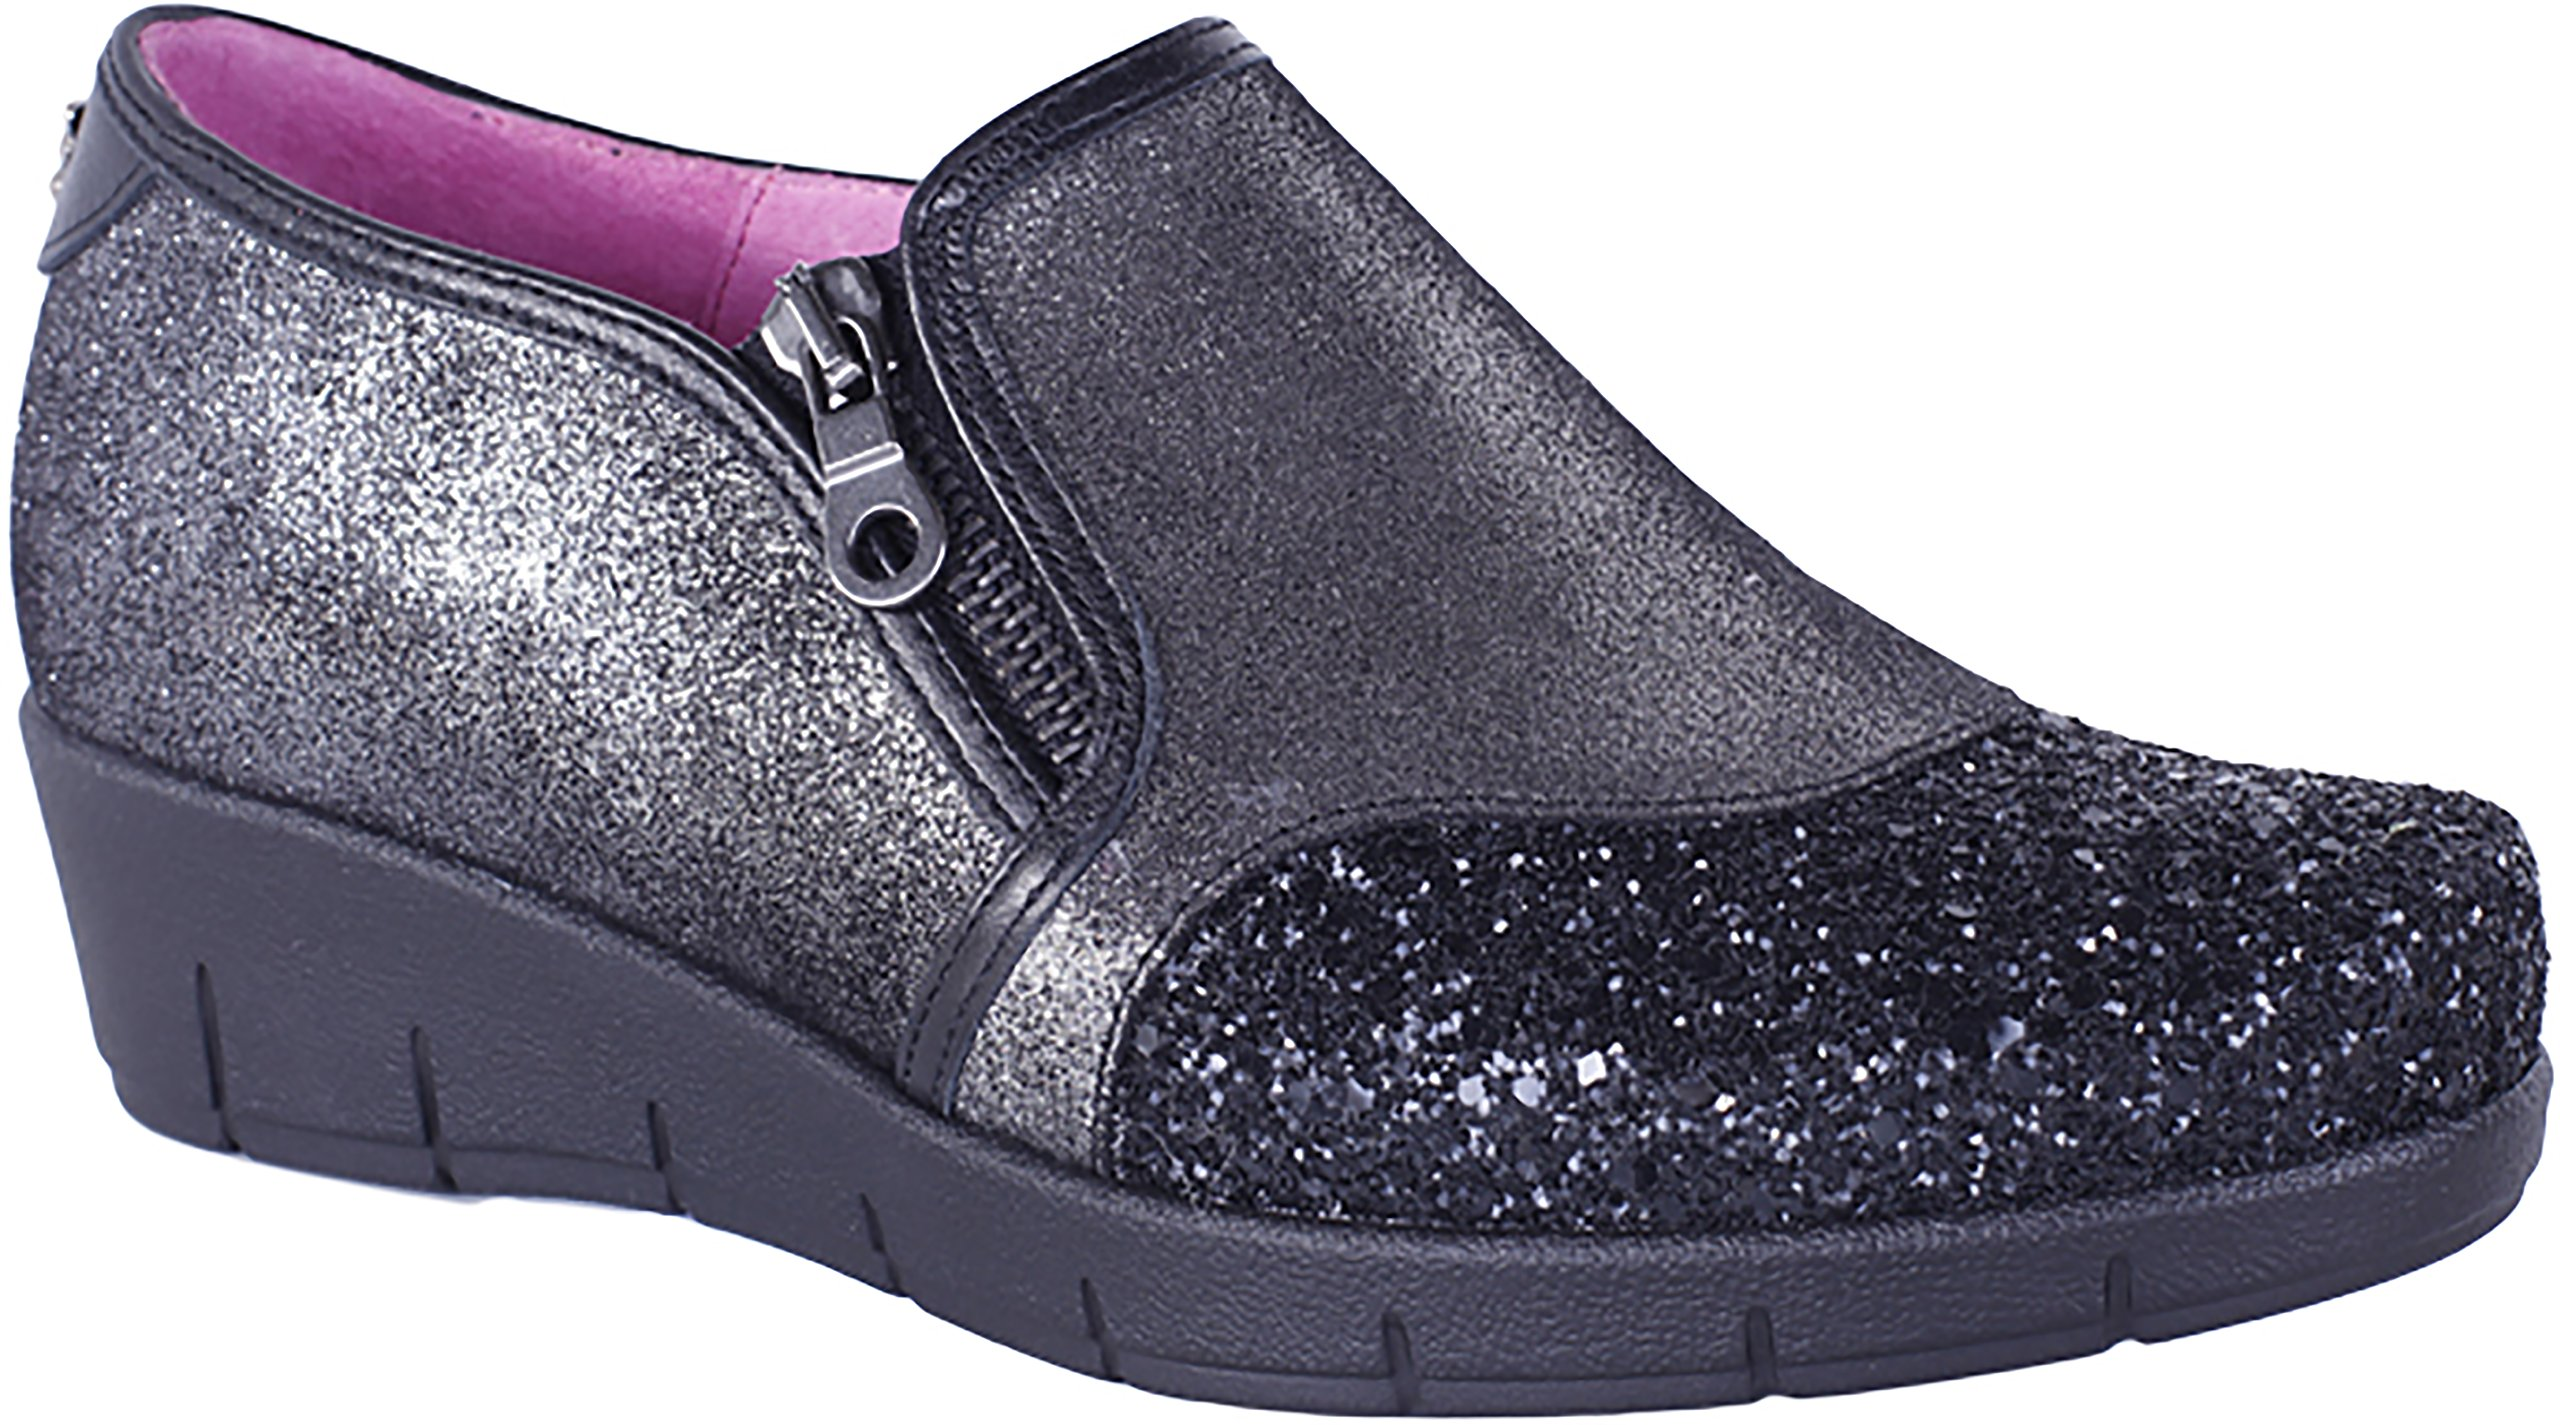 Helle Fashion Comfort Women's Wira Black Comfort Loafer With Bling Size 39